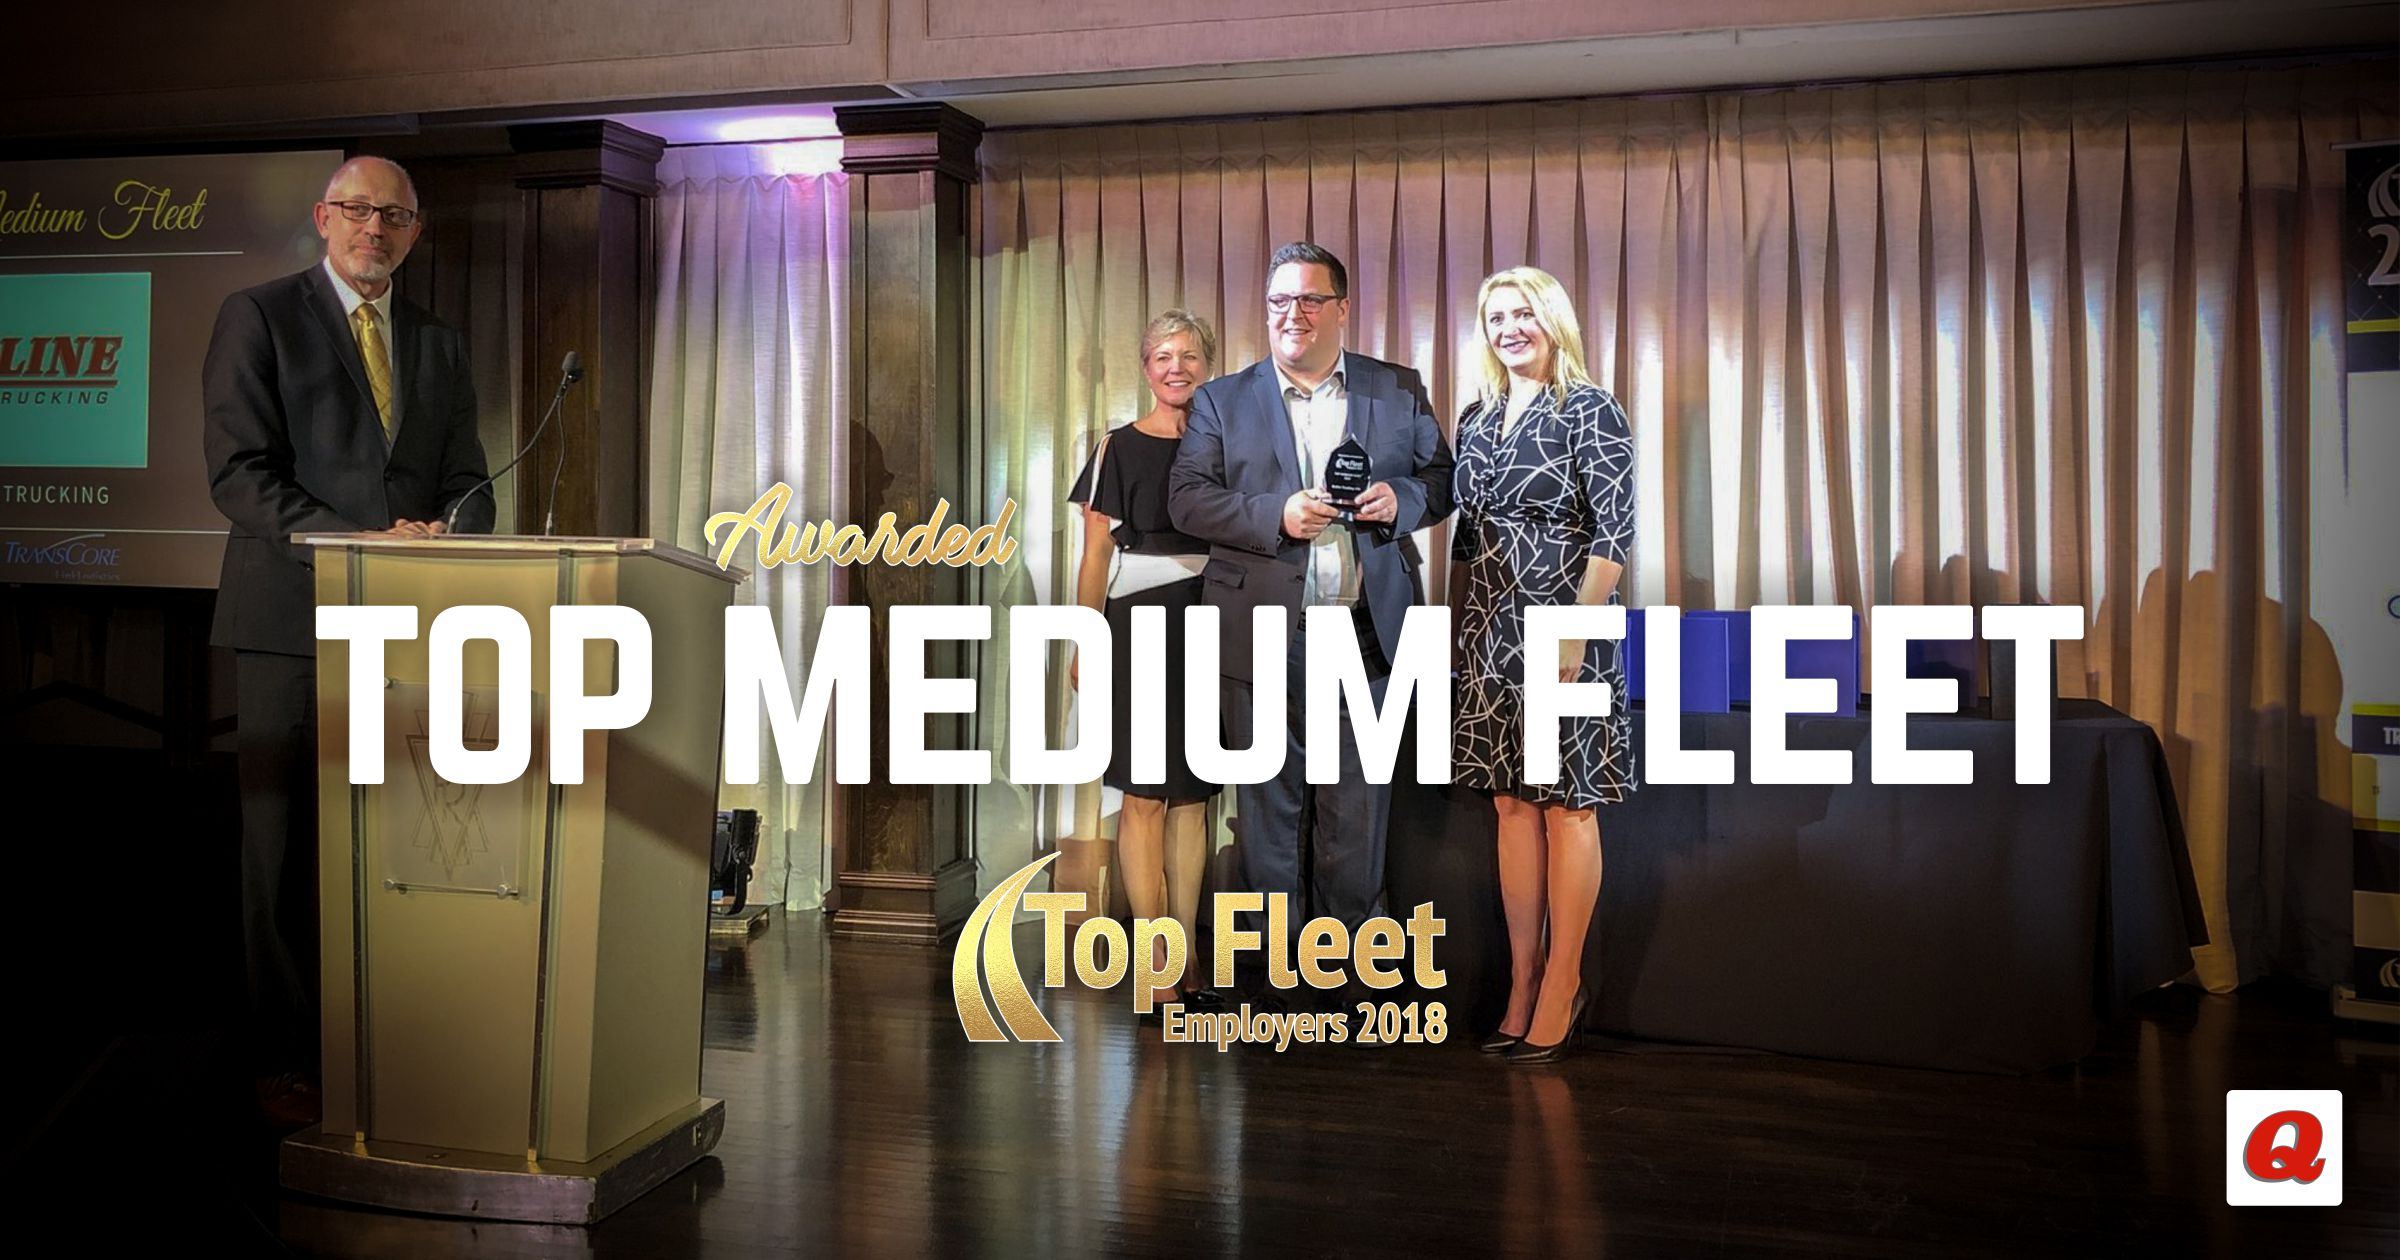 Q-Line Trucking's HR Manager, Eddy Nesdoly, accepts the award for Top Medium Fleet!